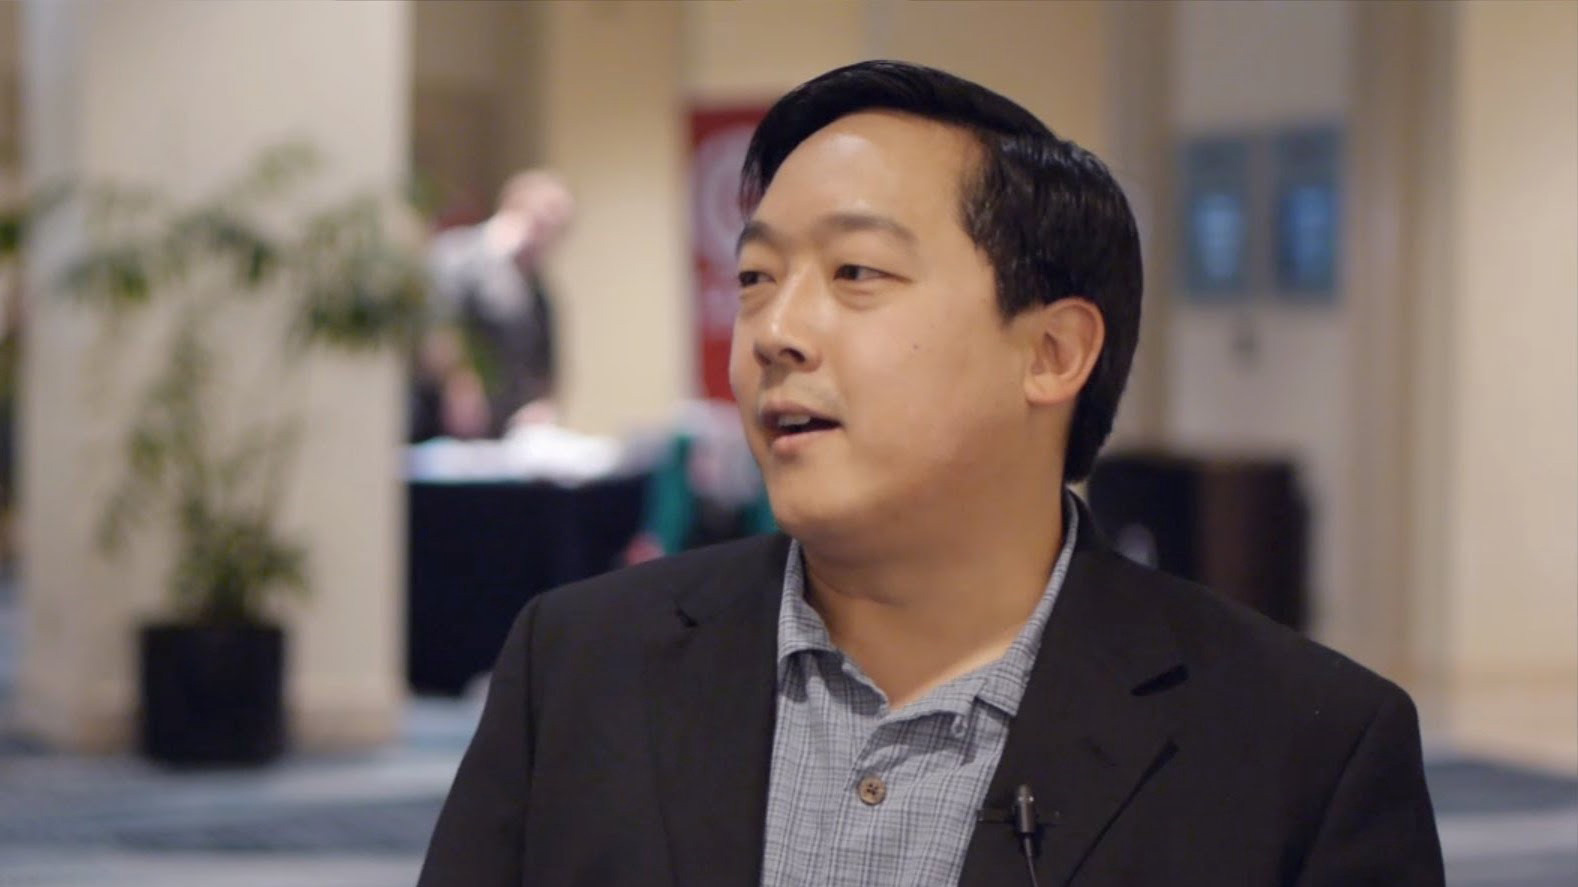 NFT prices will eventually crash, says Litecoin creator Charlie Lee